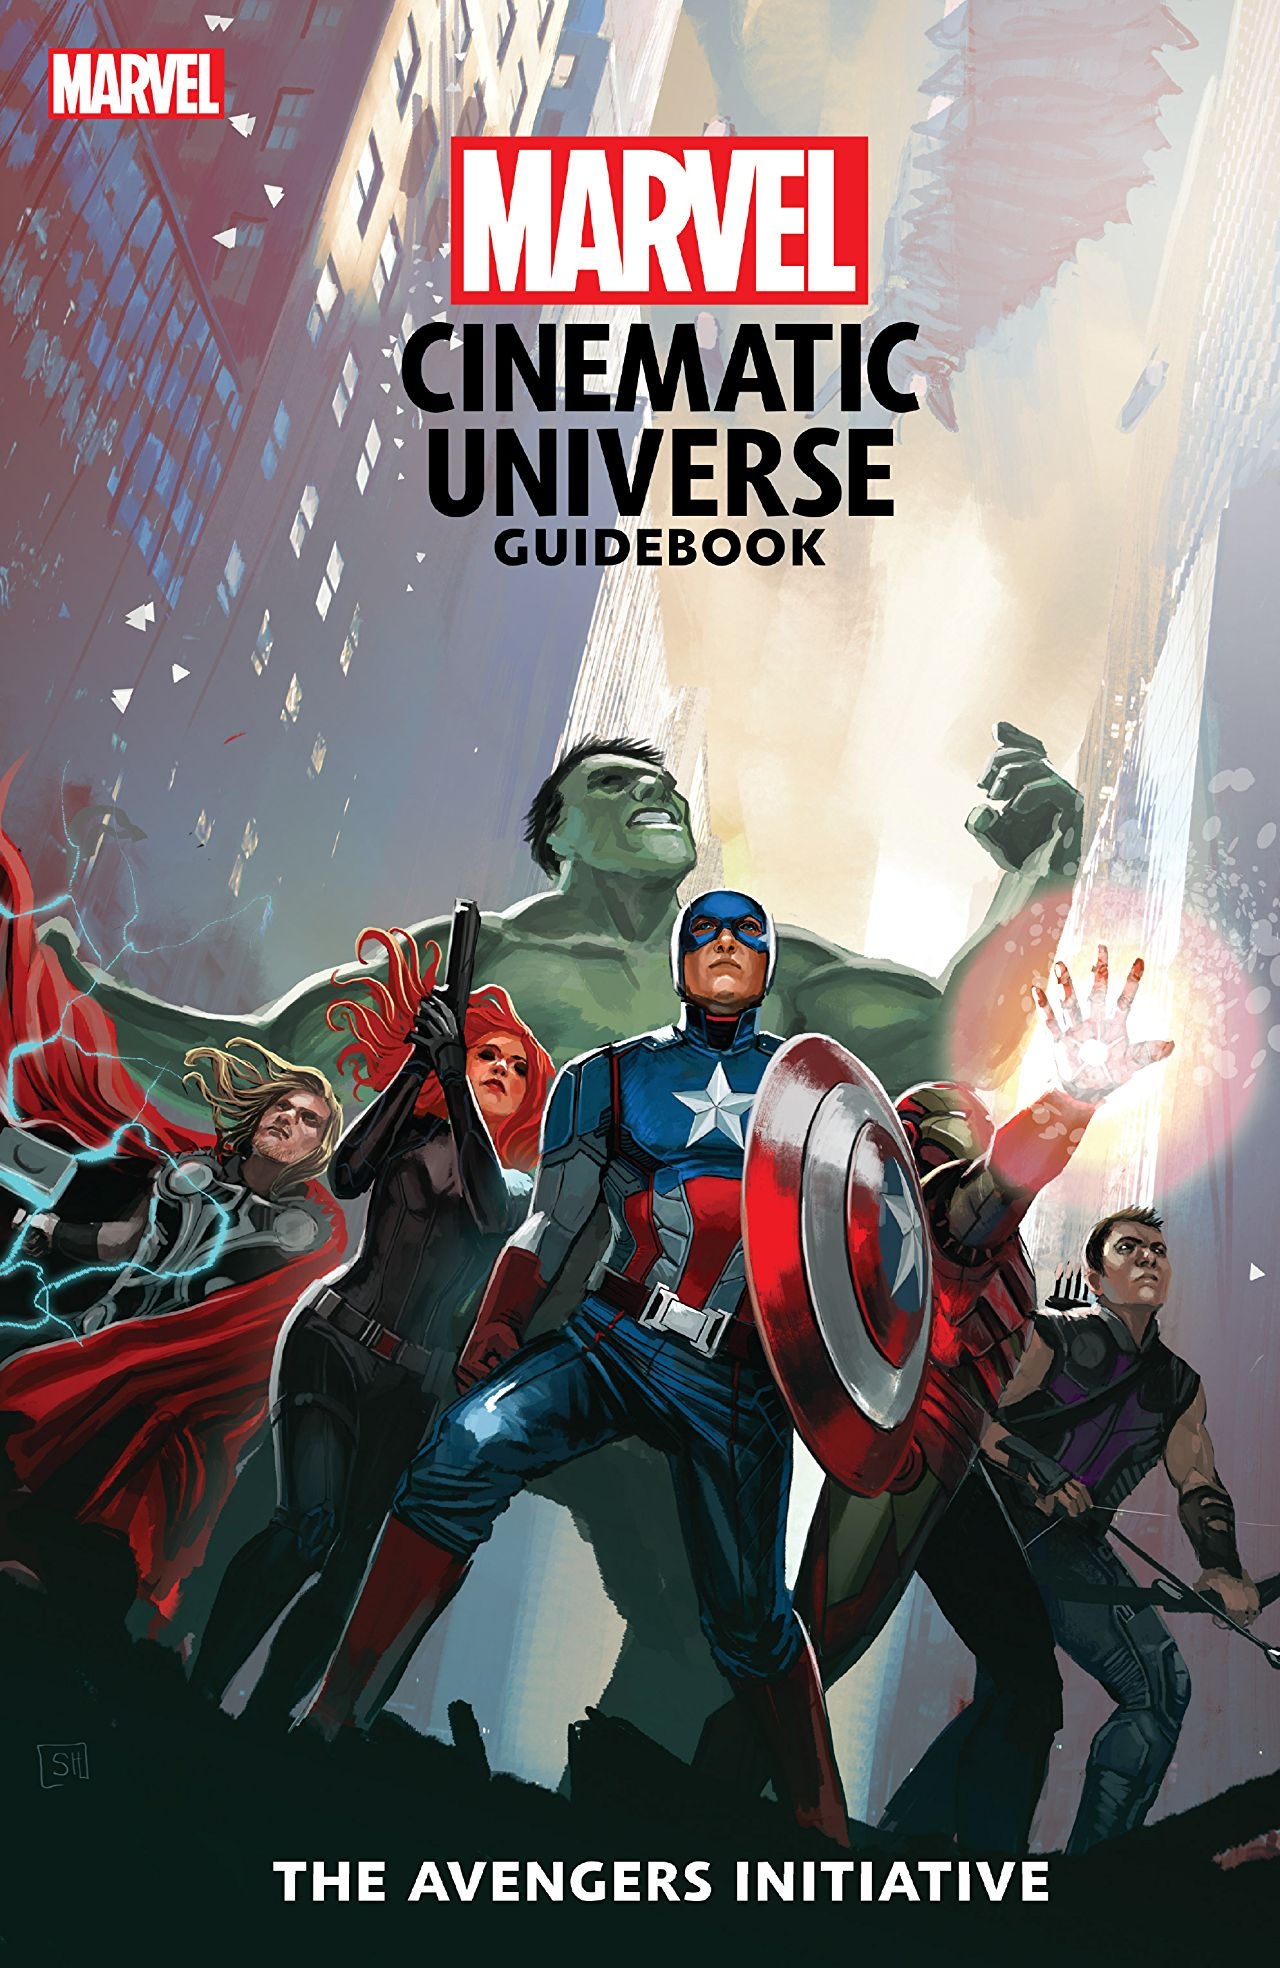 Marvel Cinematic Universe Guidebook: The Avengers Initiative Vol 1